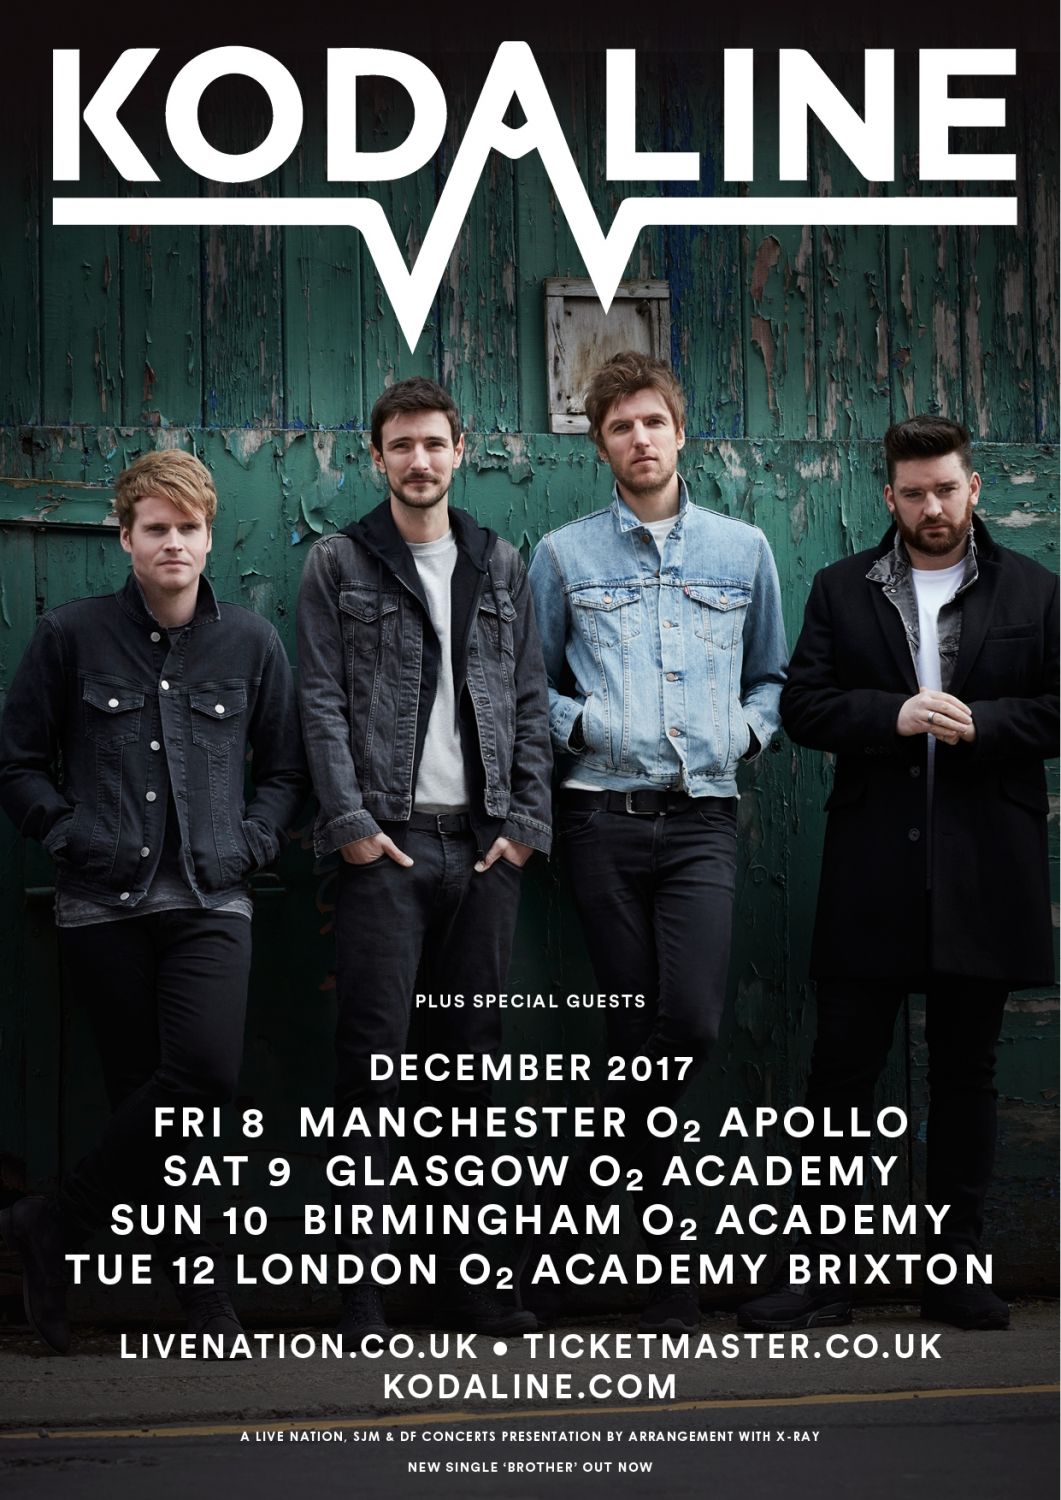 KODALINE TOUR DATES